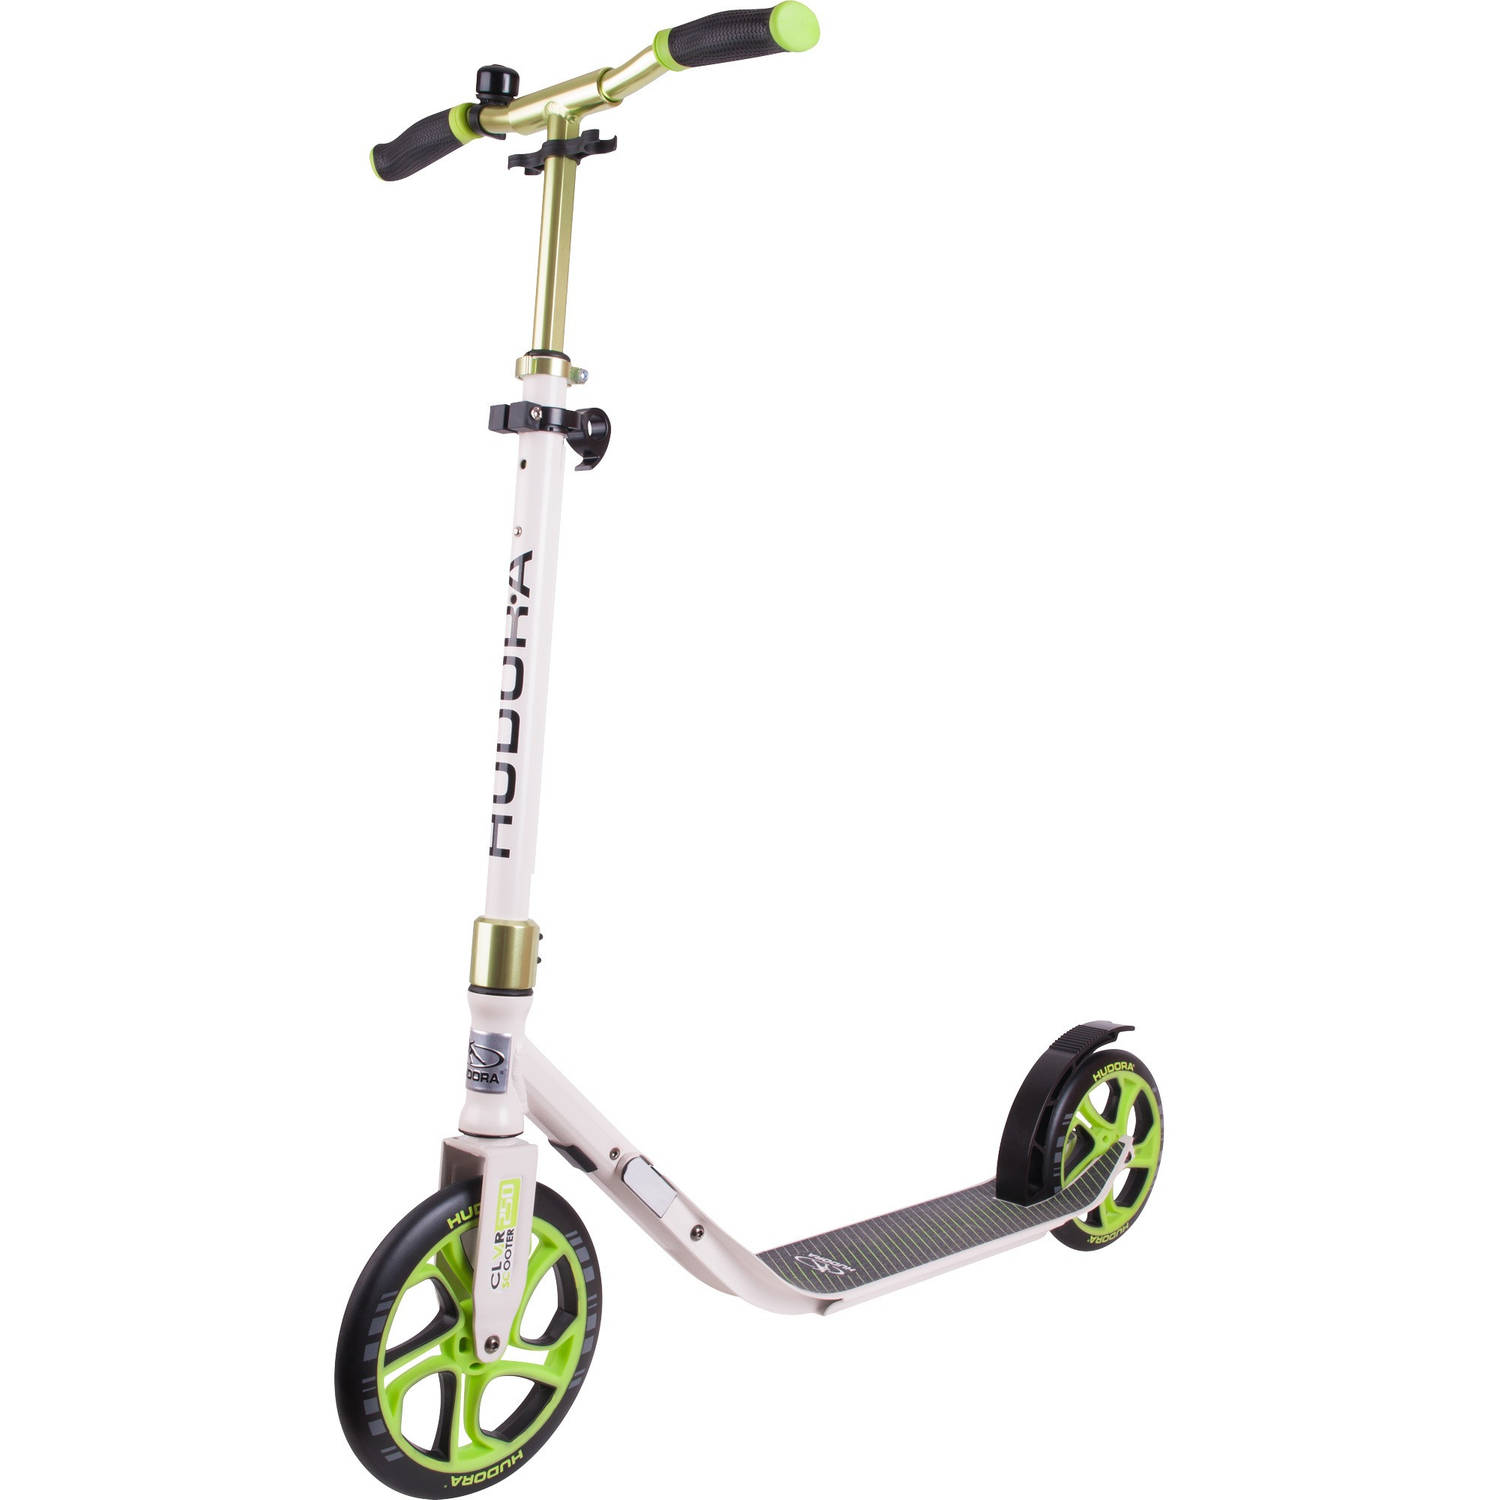 Scooter CLVR 250